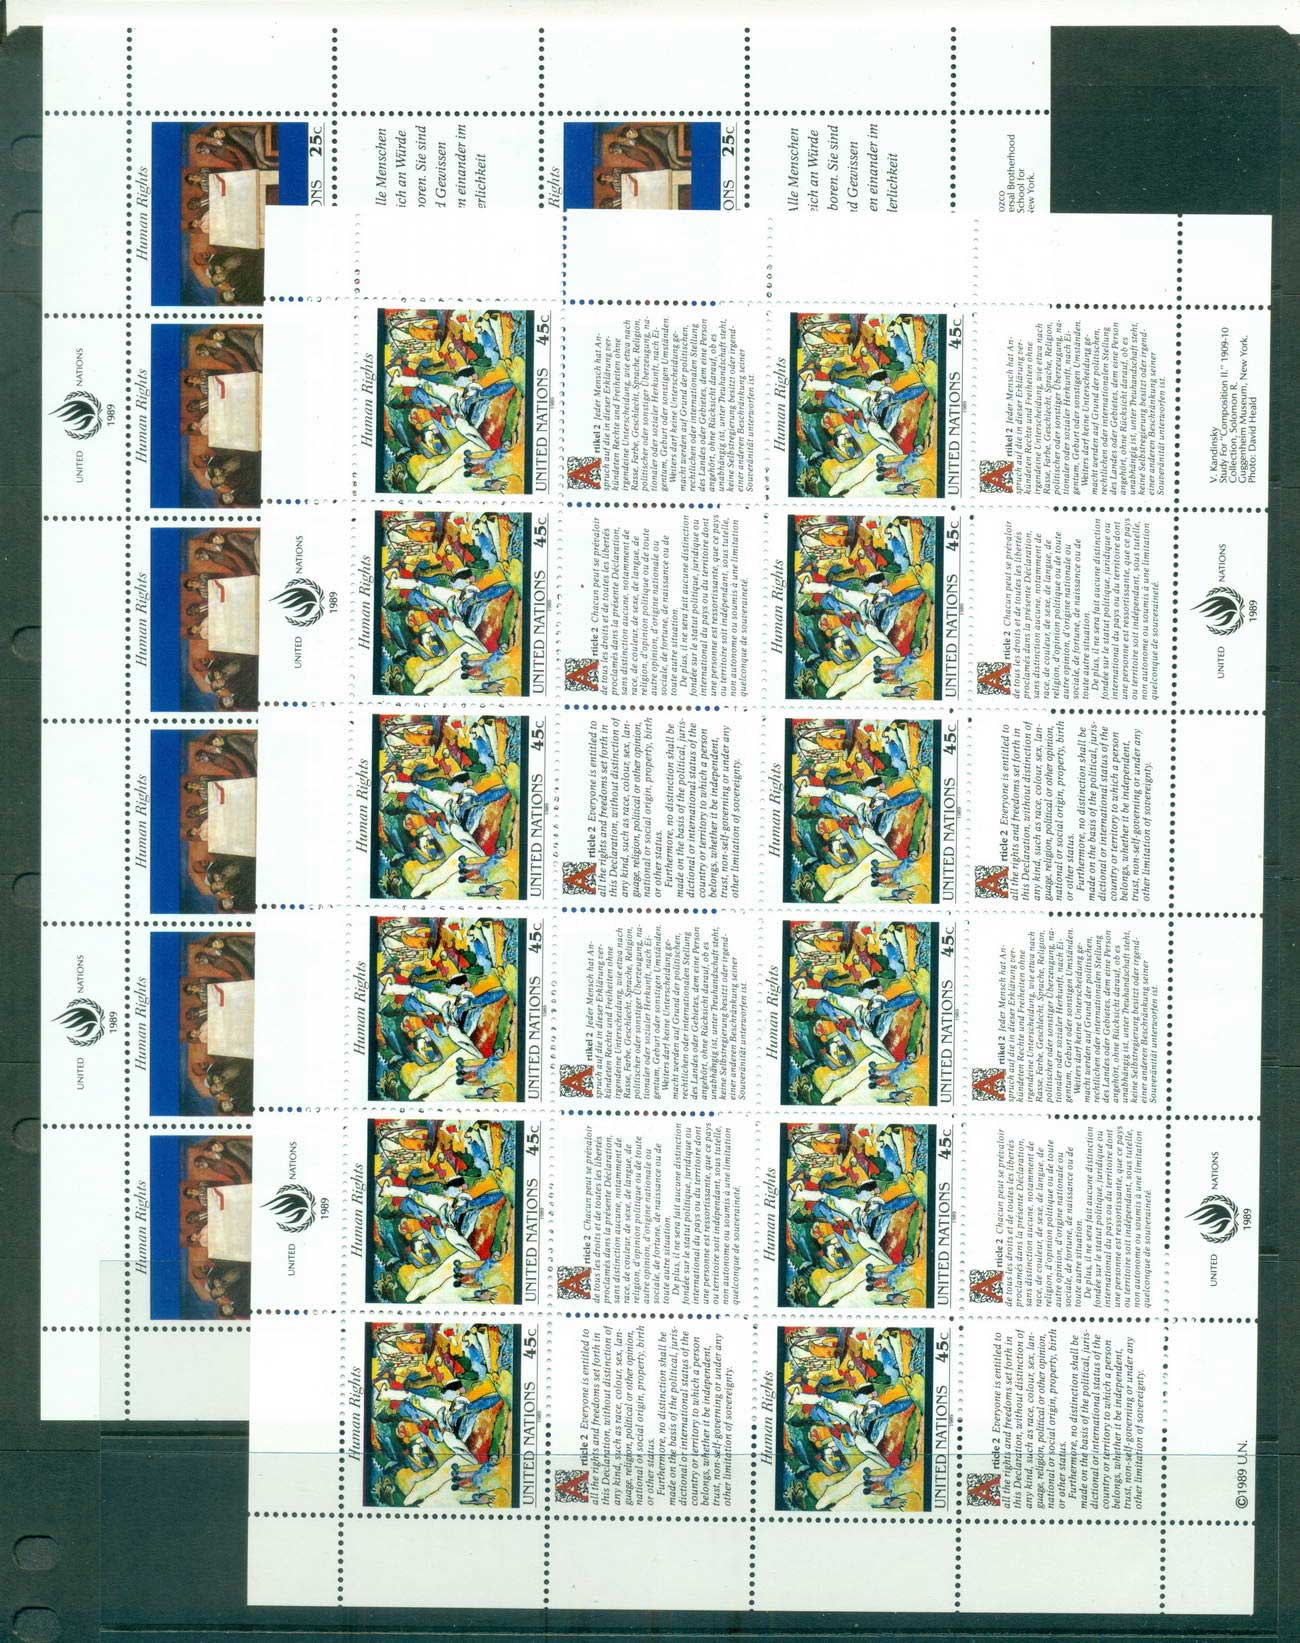 UN New York 1989 Human Rights 2x Sheets MUH lot66034